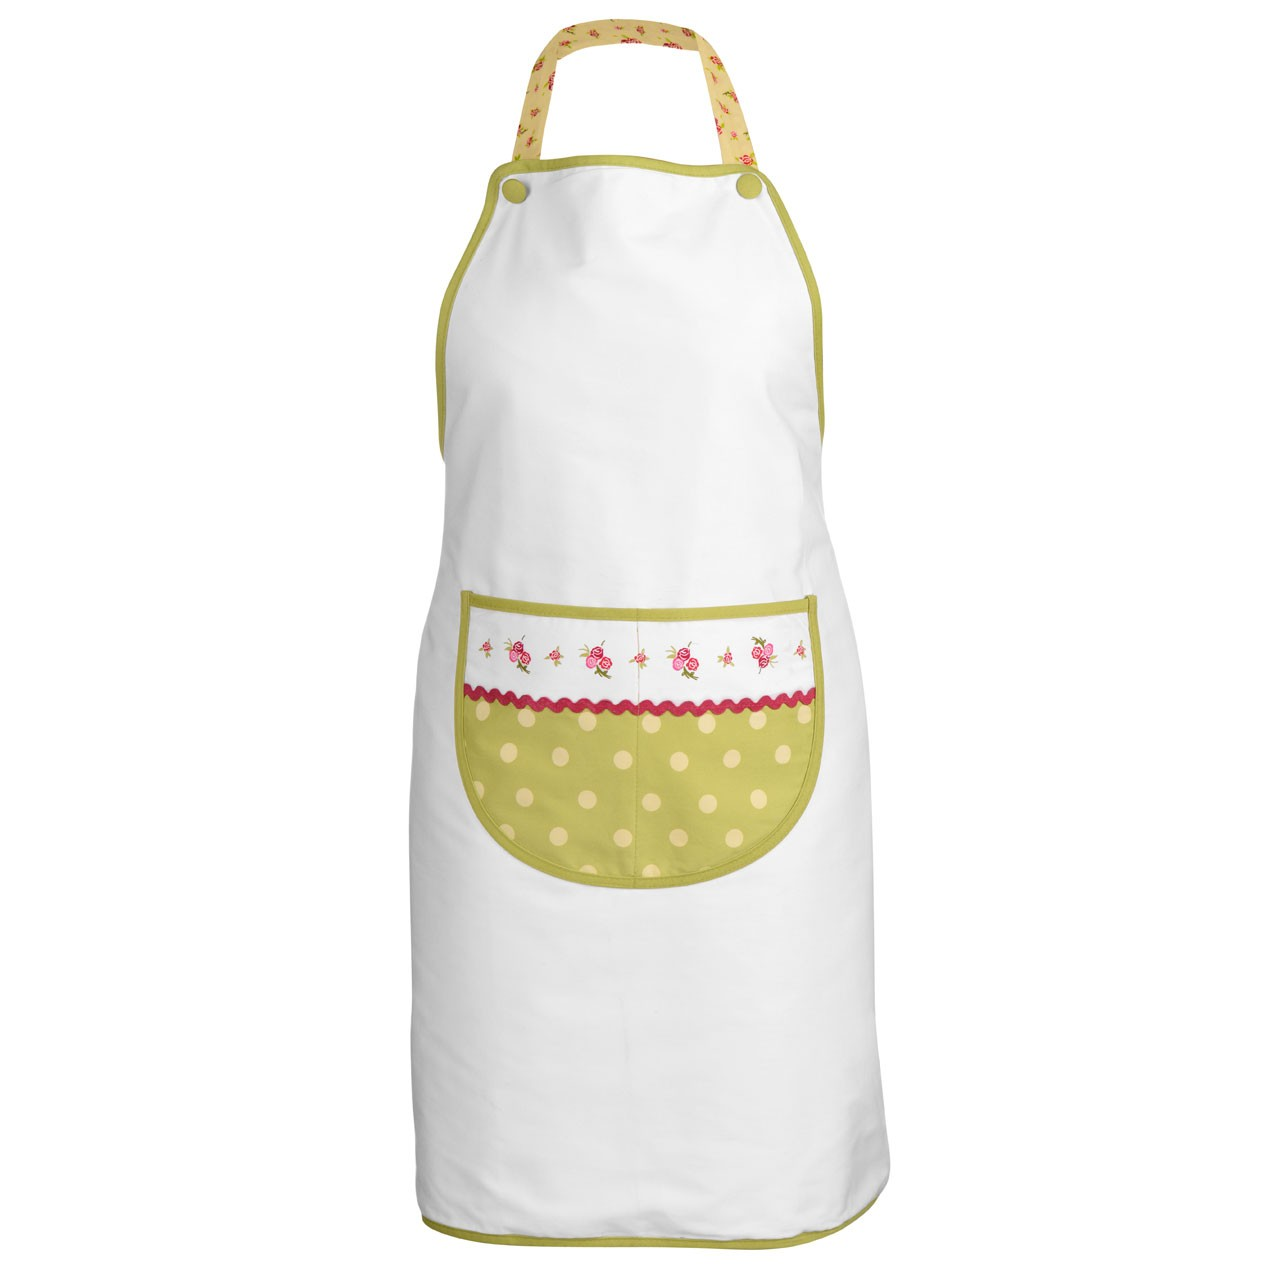 Rose Cotton Kitchen Apron